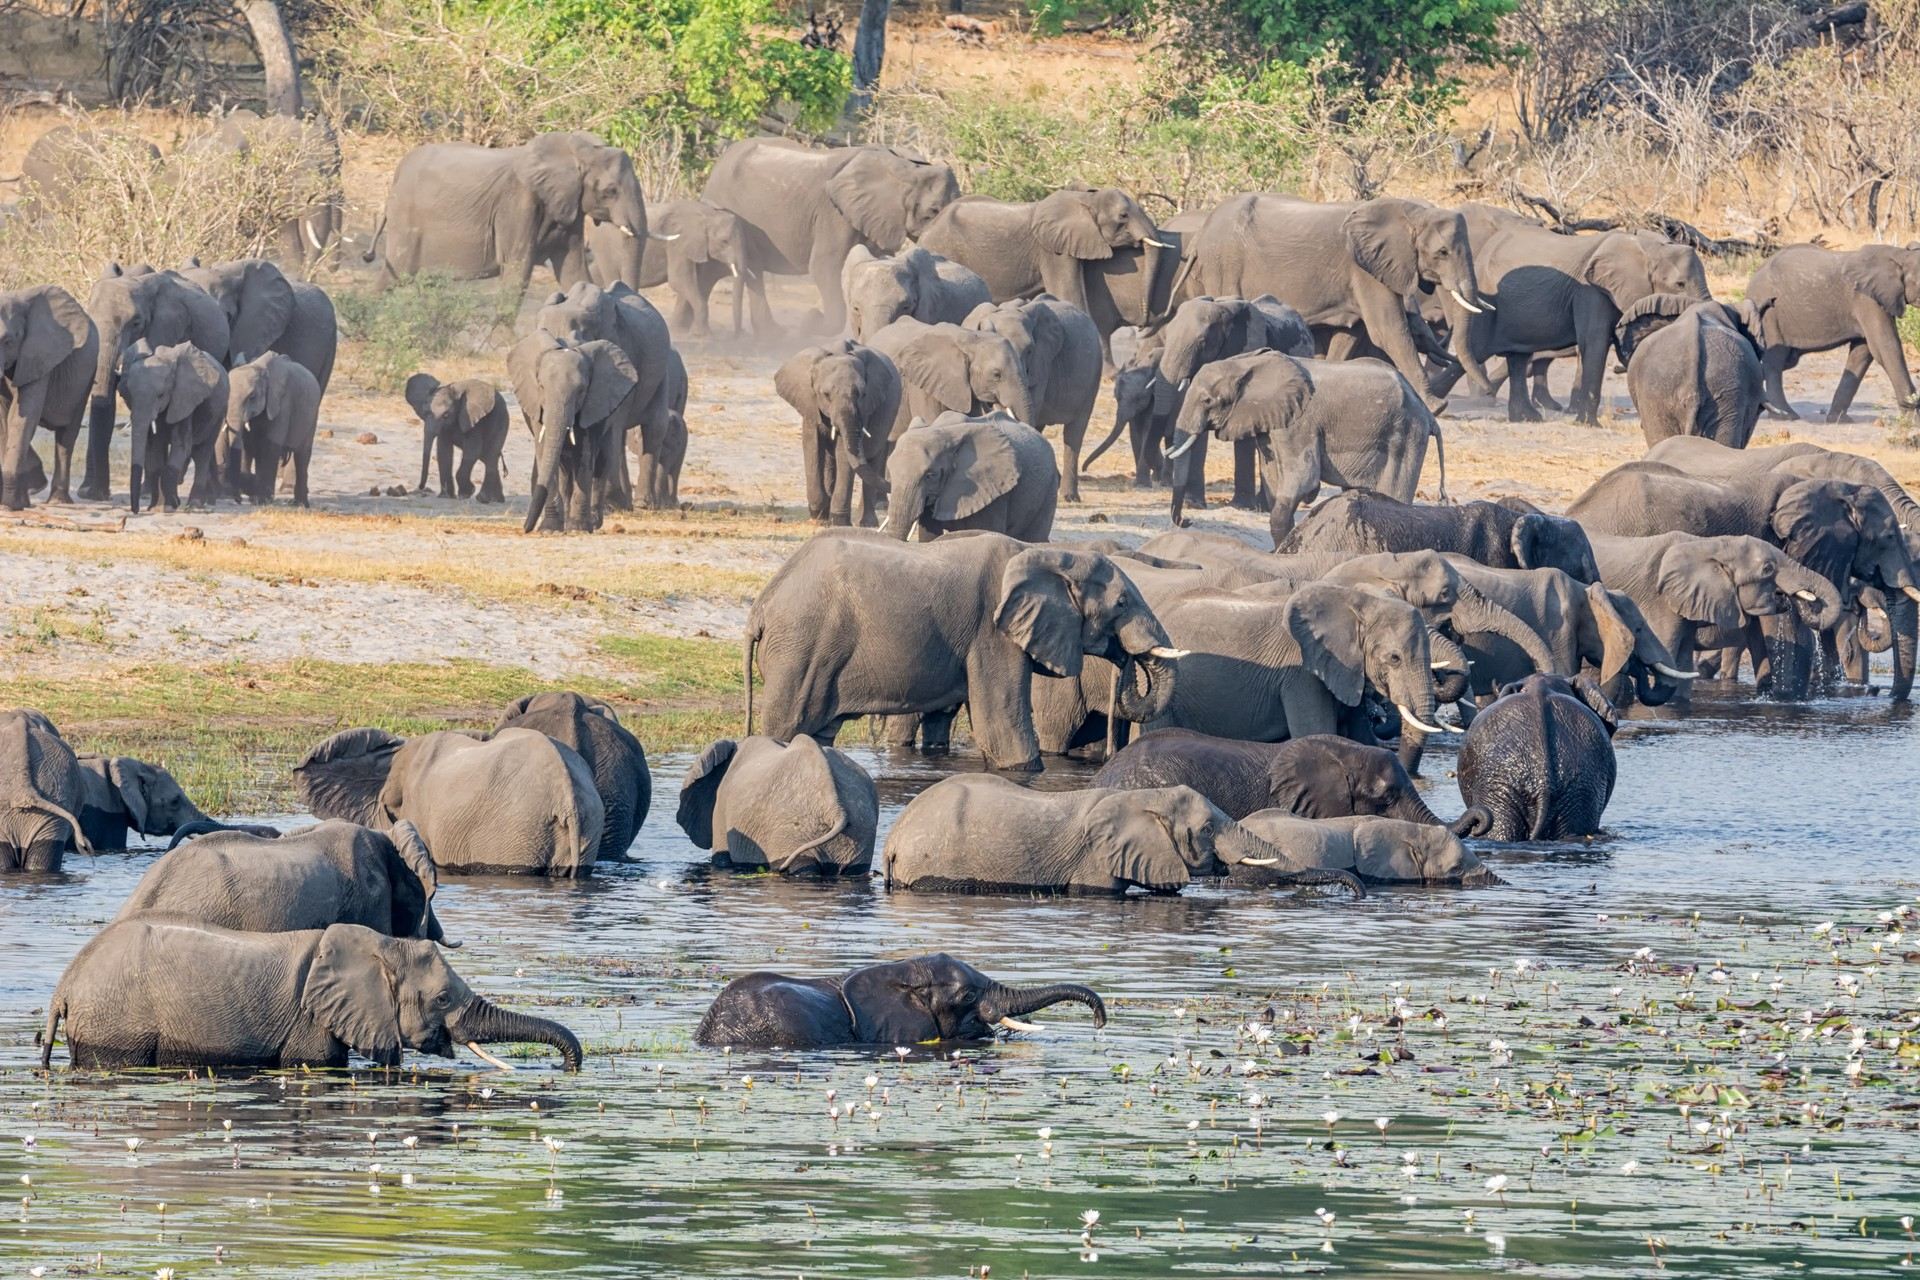 Elephants in Caprivi Strip, Namibia